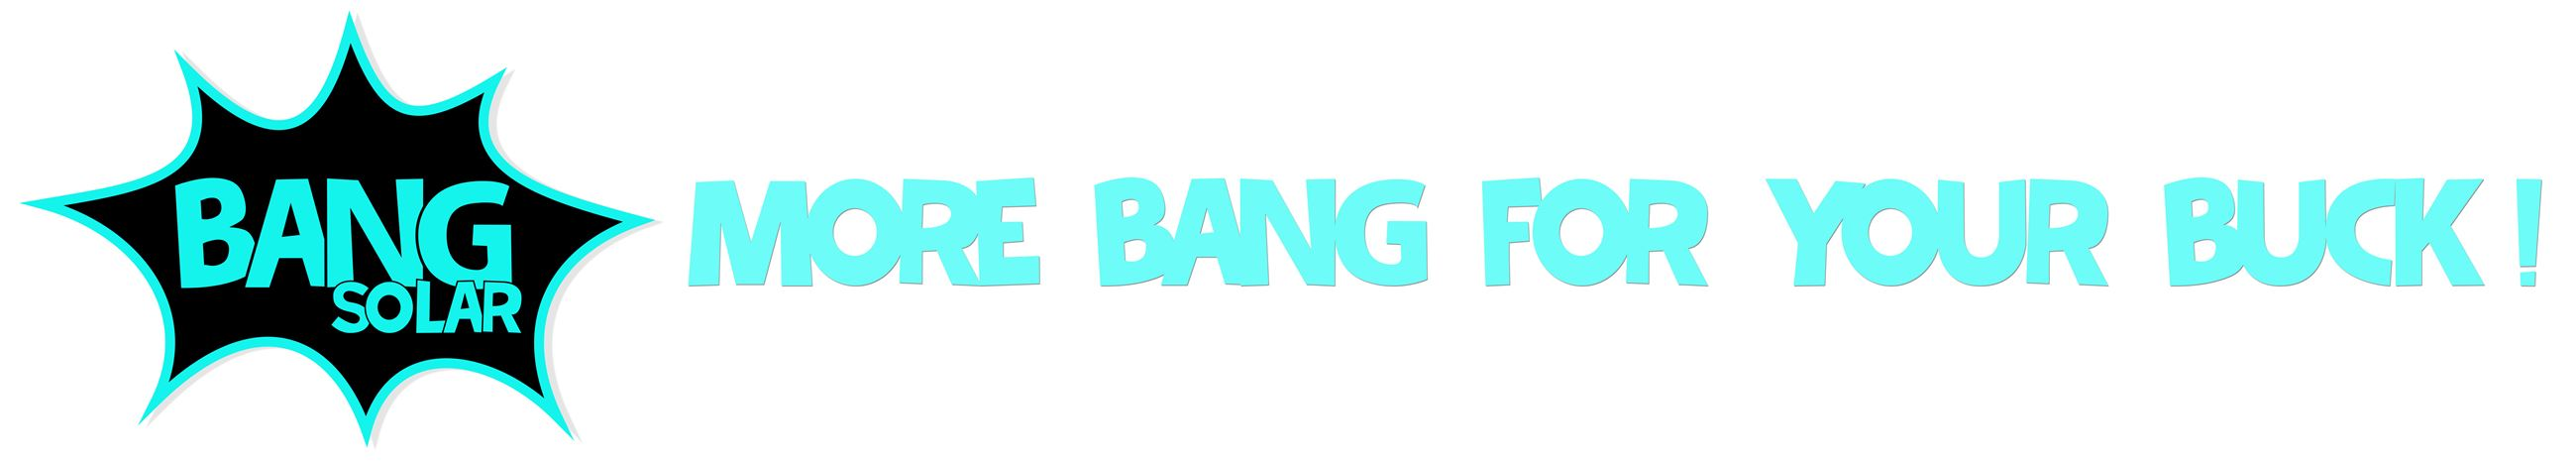 Bang Solar logo More Bang For Your Buck slogan